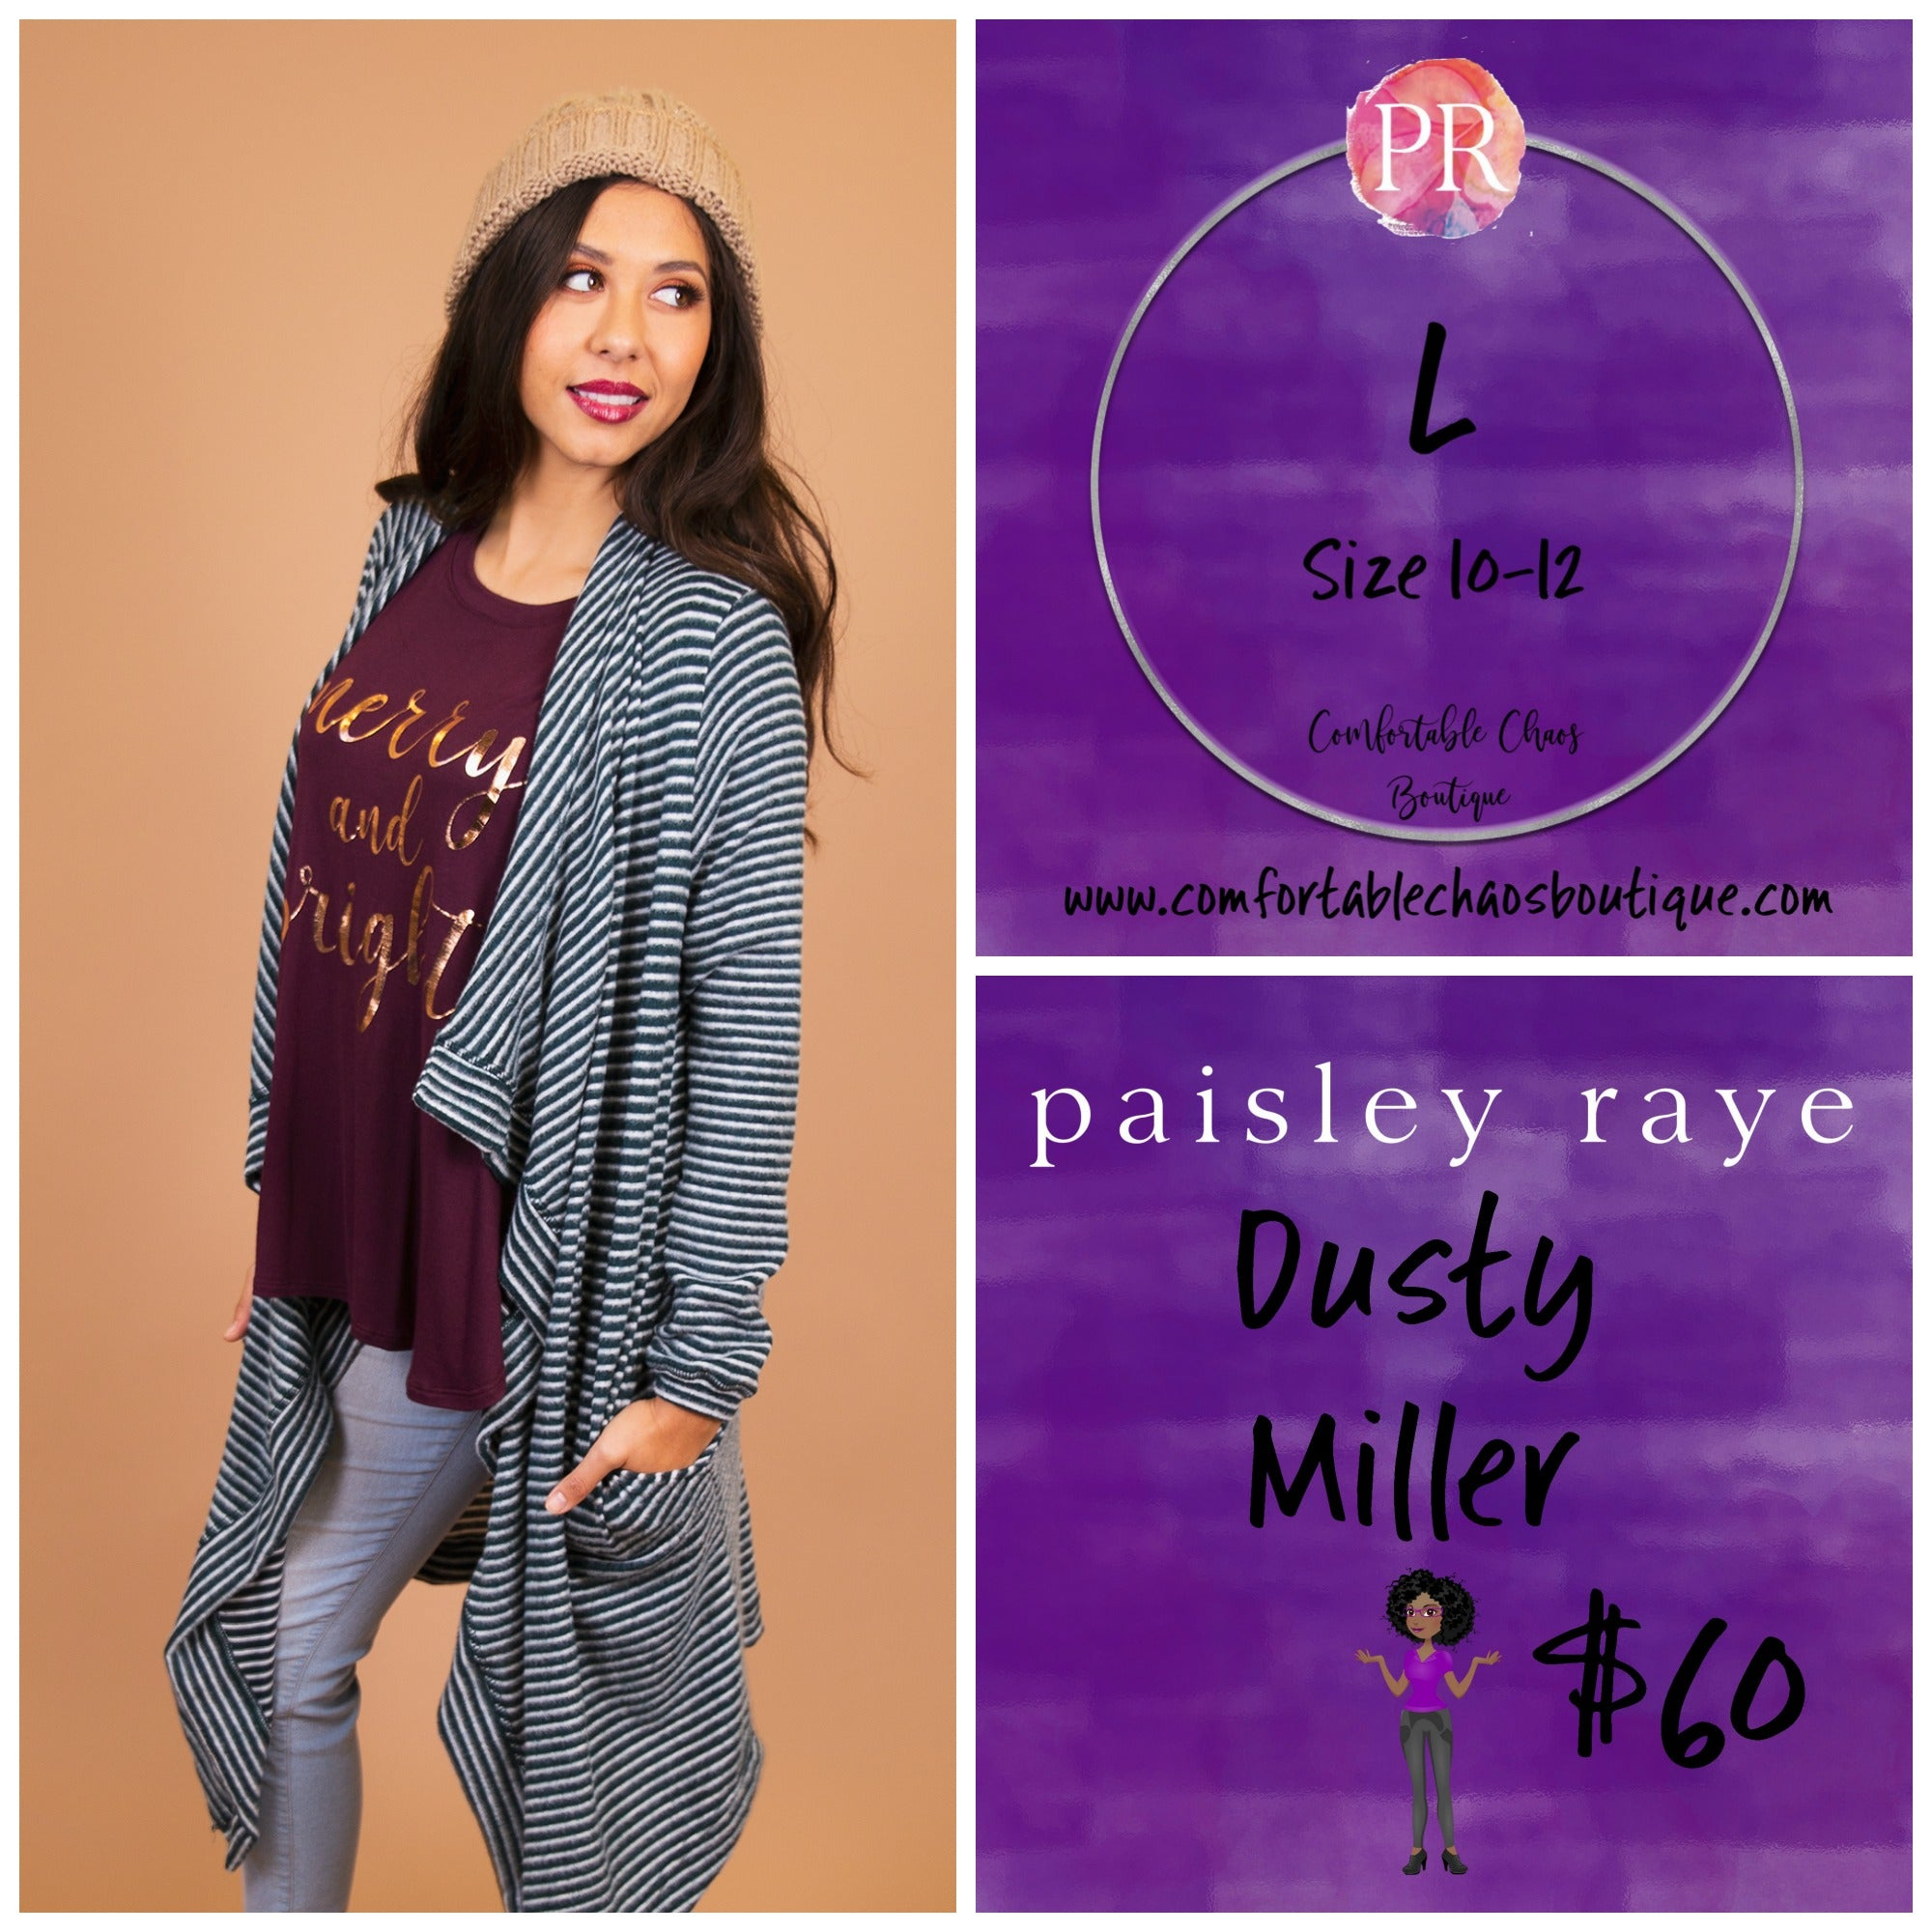 comfortable-chaos-boutique - Dusty Miller - Teal and White Stripe (L) - Layering